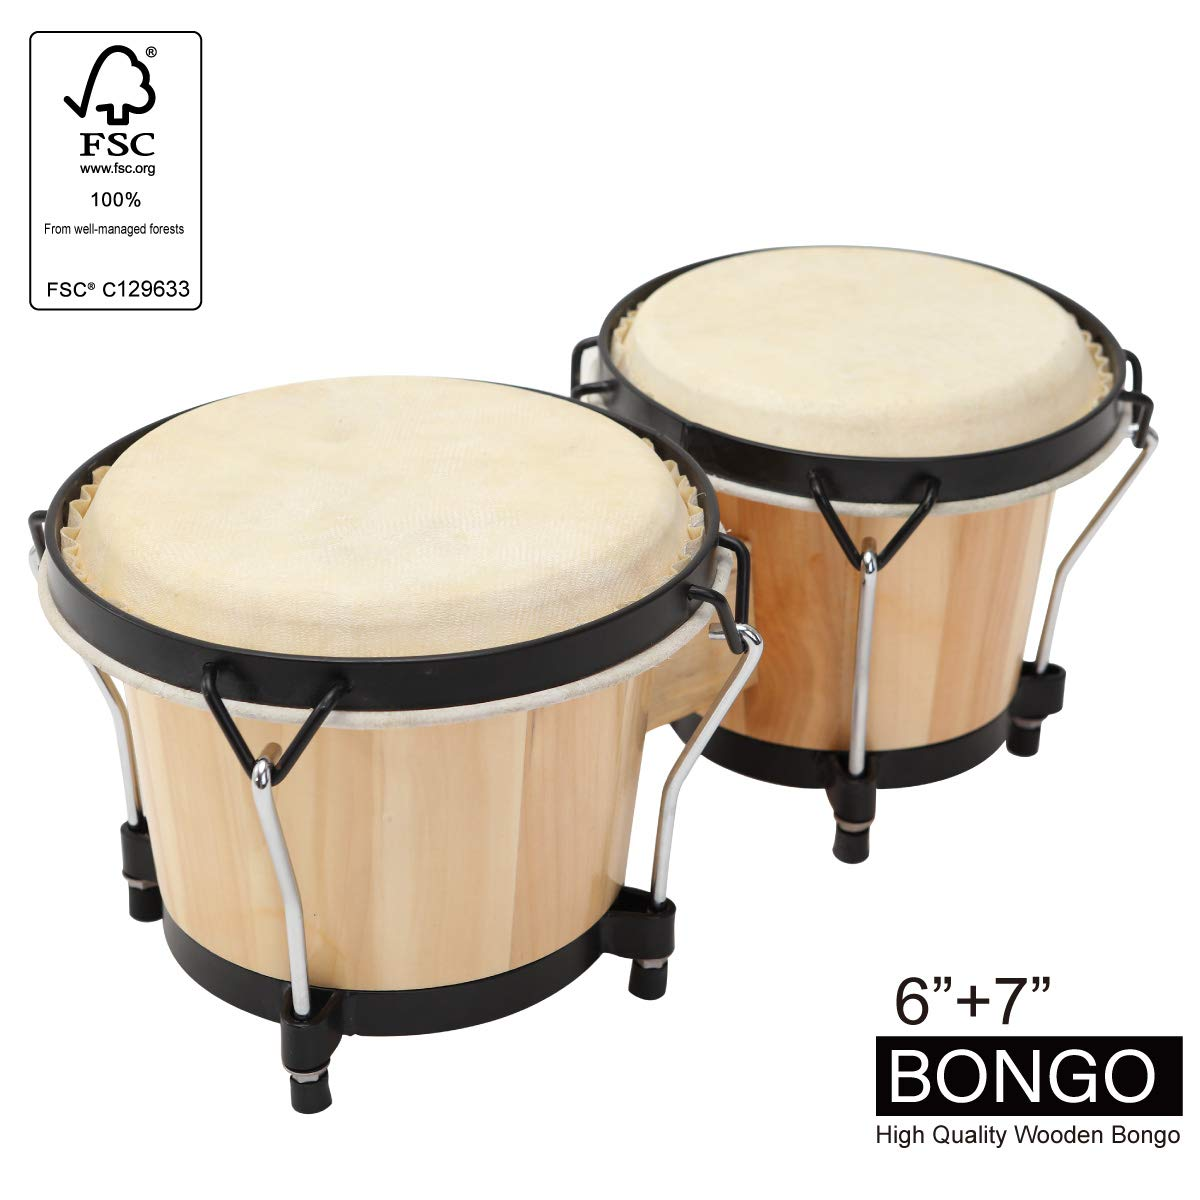 MUSICUBE Bongo Drum Set, 2 Sets 6'' and 7'' Percussion Instrument, FSC Wood and Metal Drum for Kids Adults Beginners Professionals with Tuning Wrench by MUSICUBE